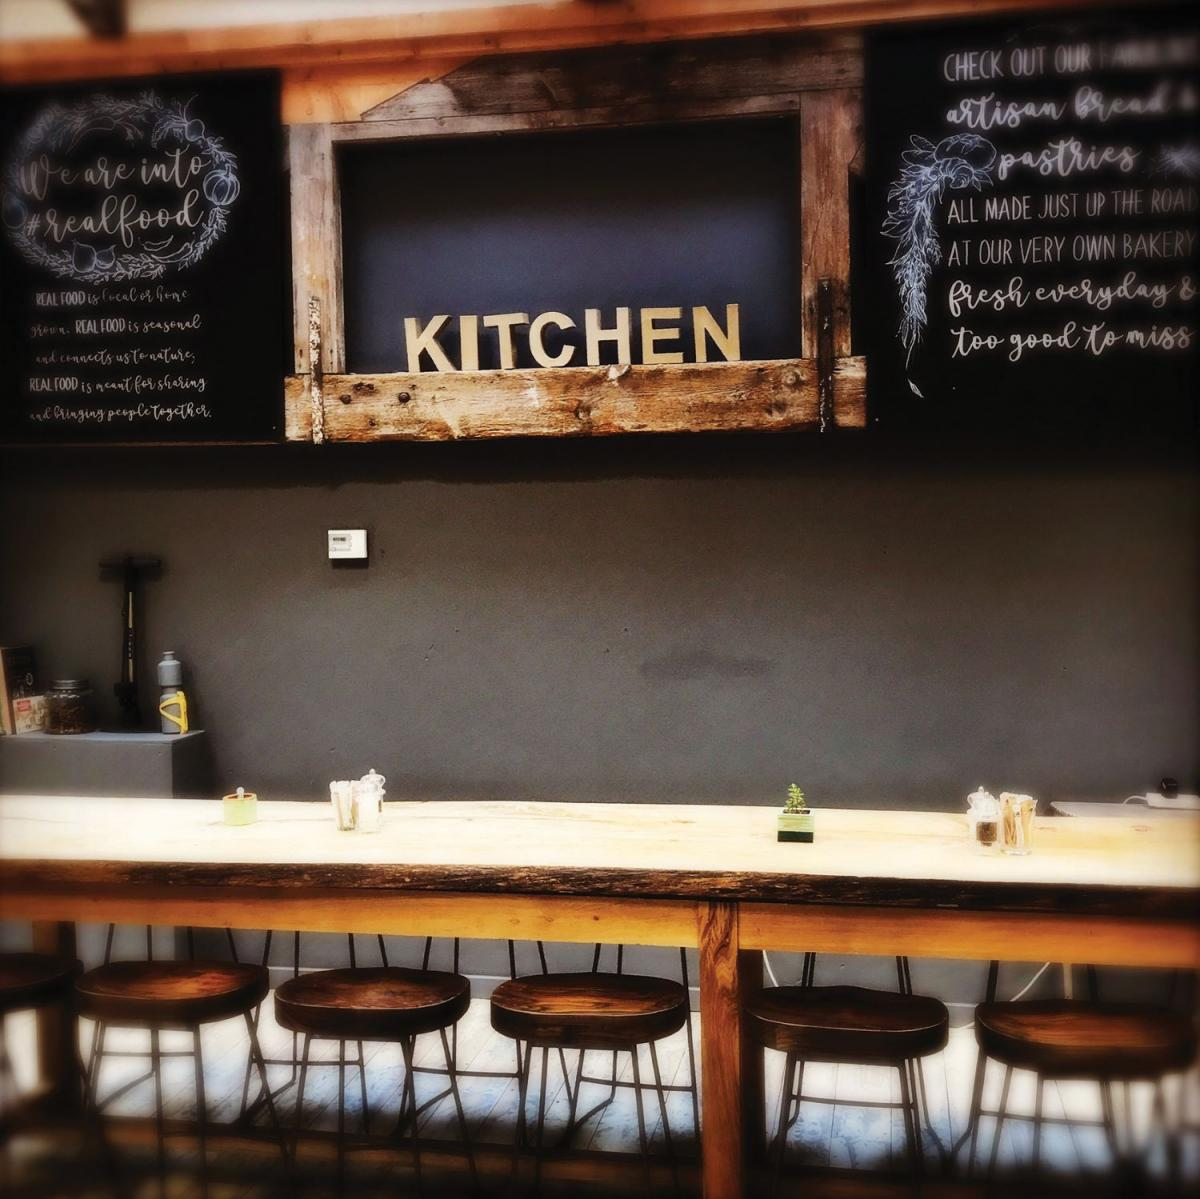 Images from Kitchen at The Wharf